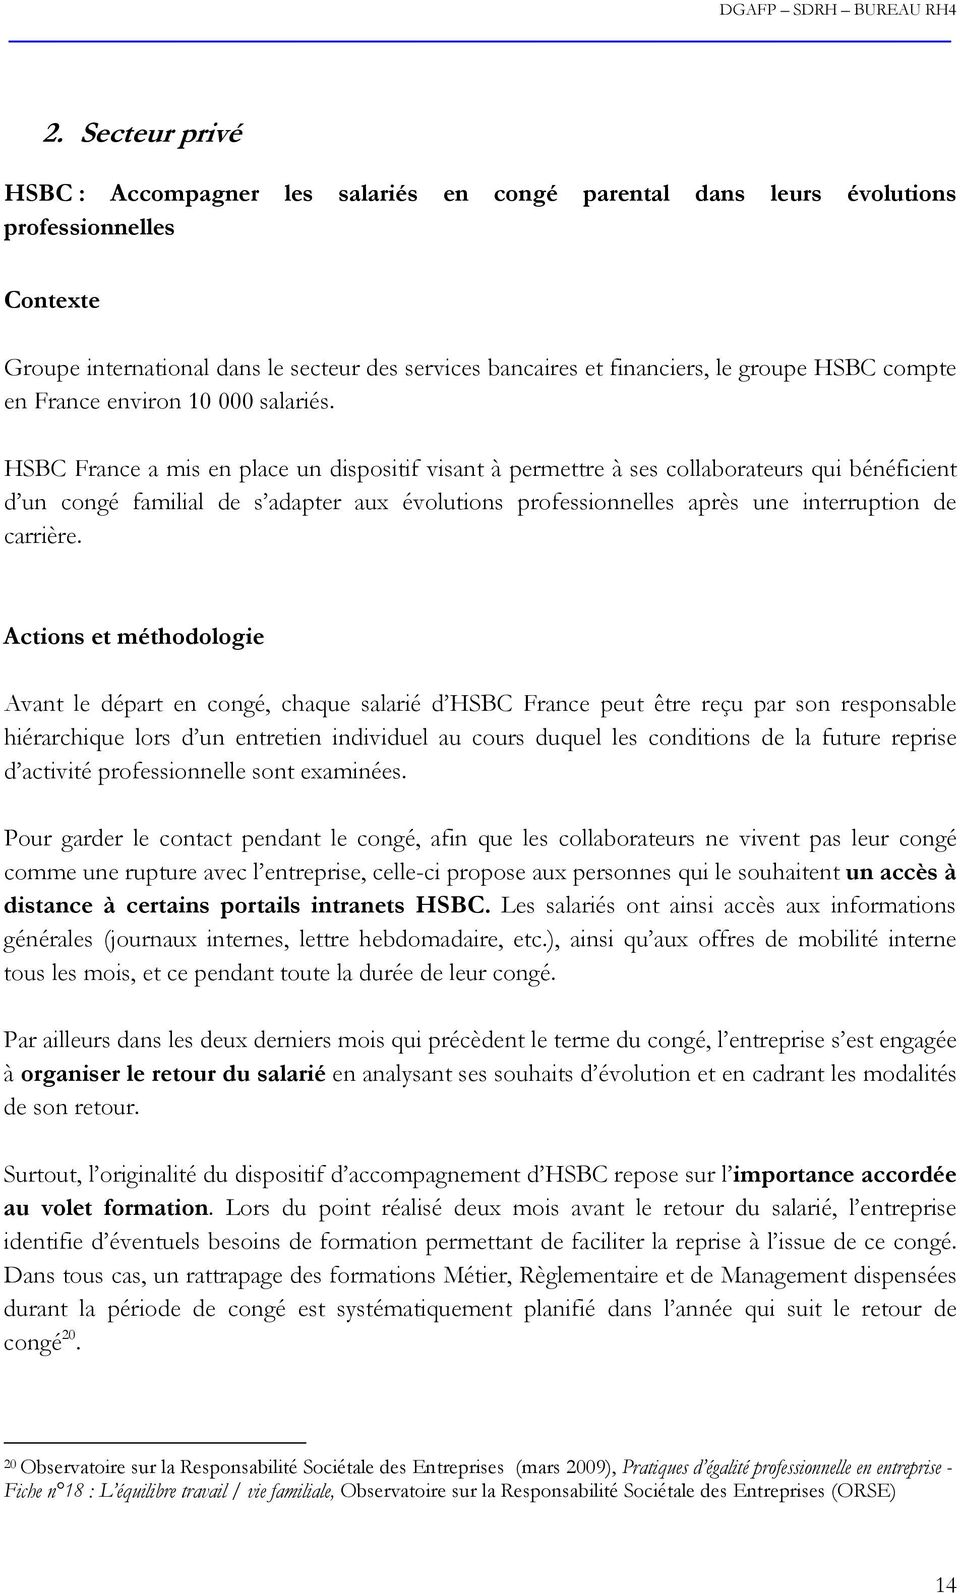 HSBC France a mis en place un dispositif visant à permettre à ses collaborateurs qui bénéficient d un congé familial de s adapter aux évolutions professionnelles après une interruption de carrière.